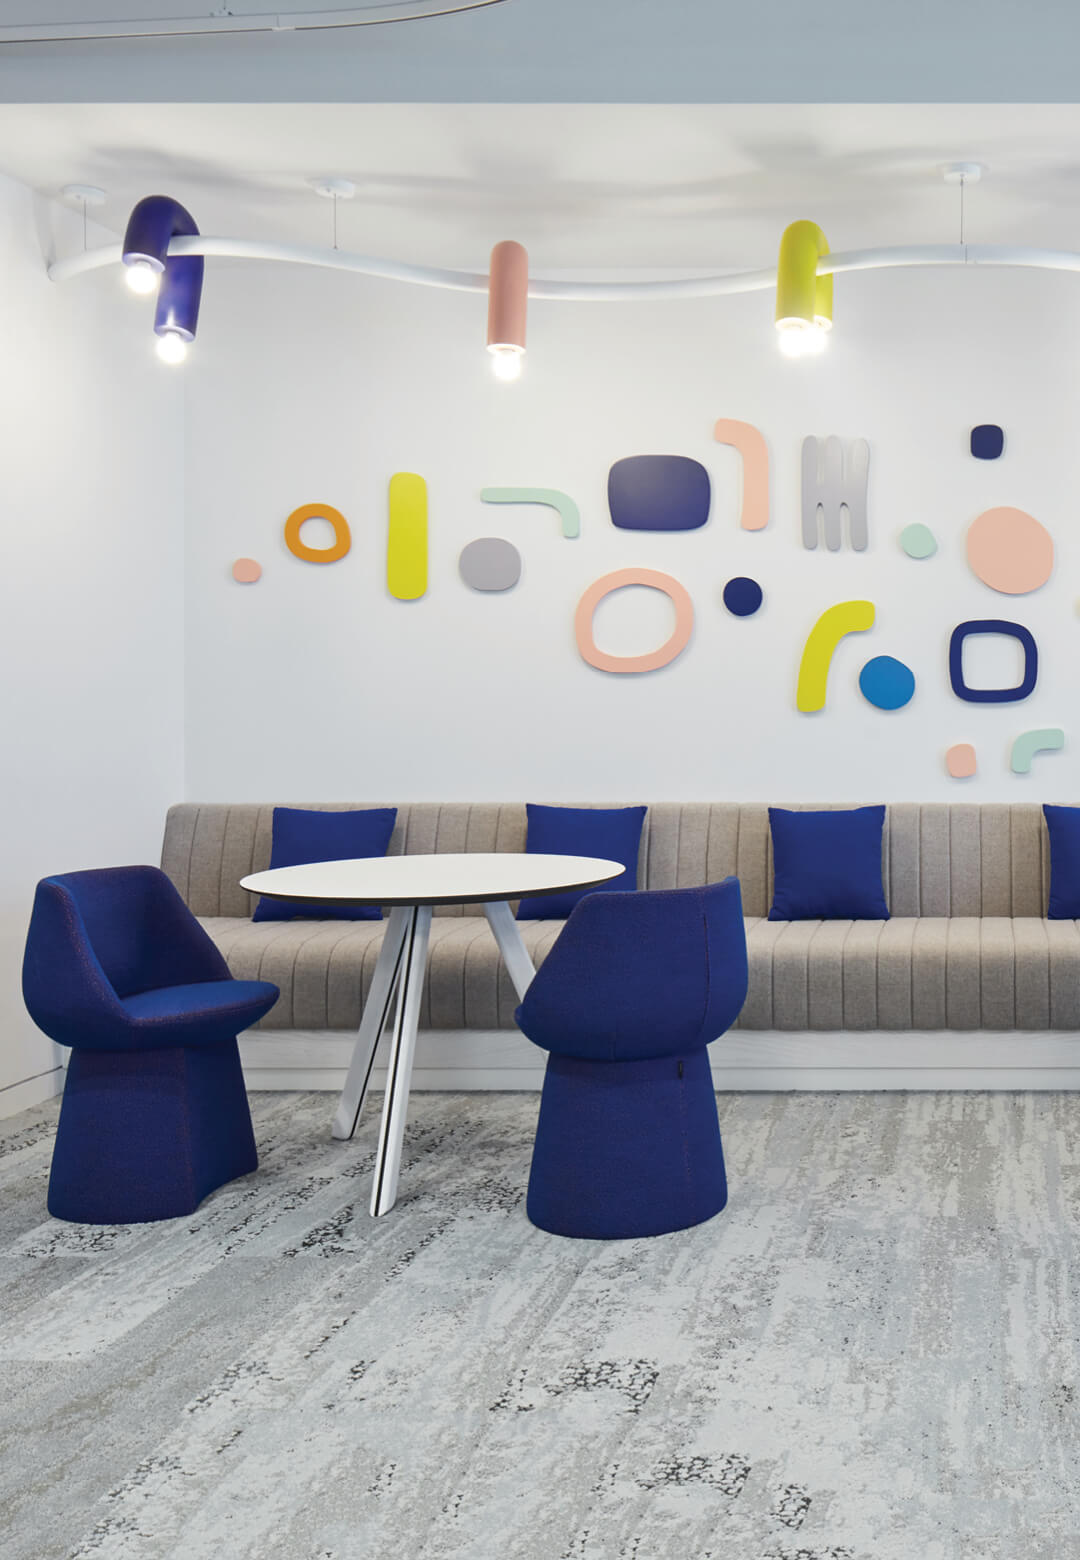 Inside the new headquarters of Early Childhood Authority in Abu Dhabi | Early Childhood Authority by Roar | STIRworld